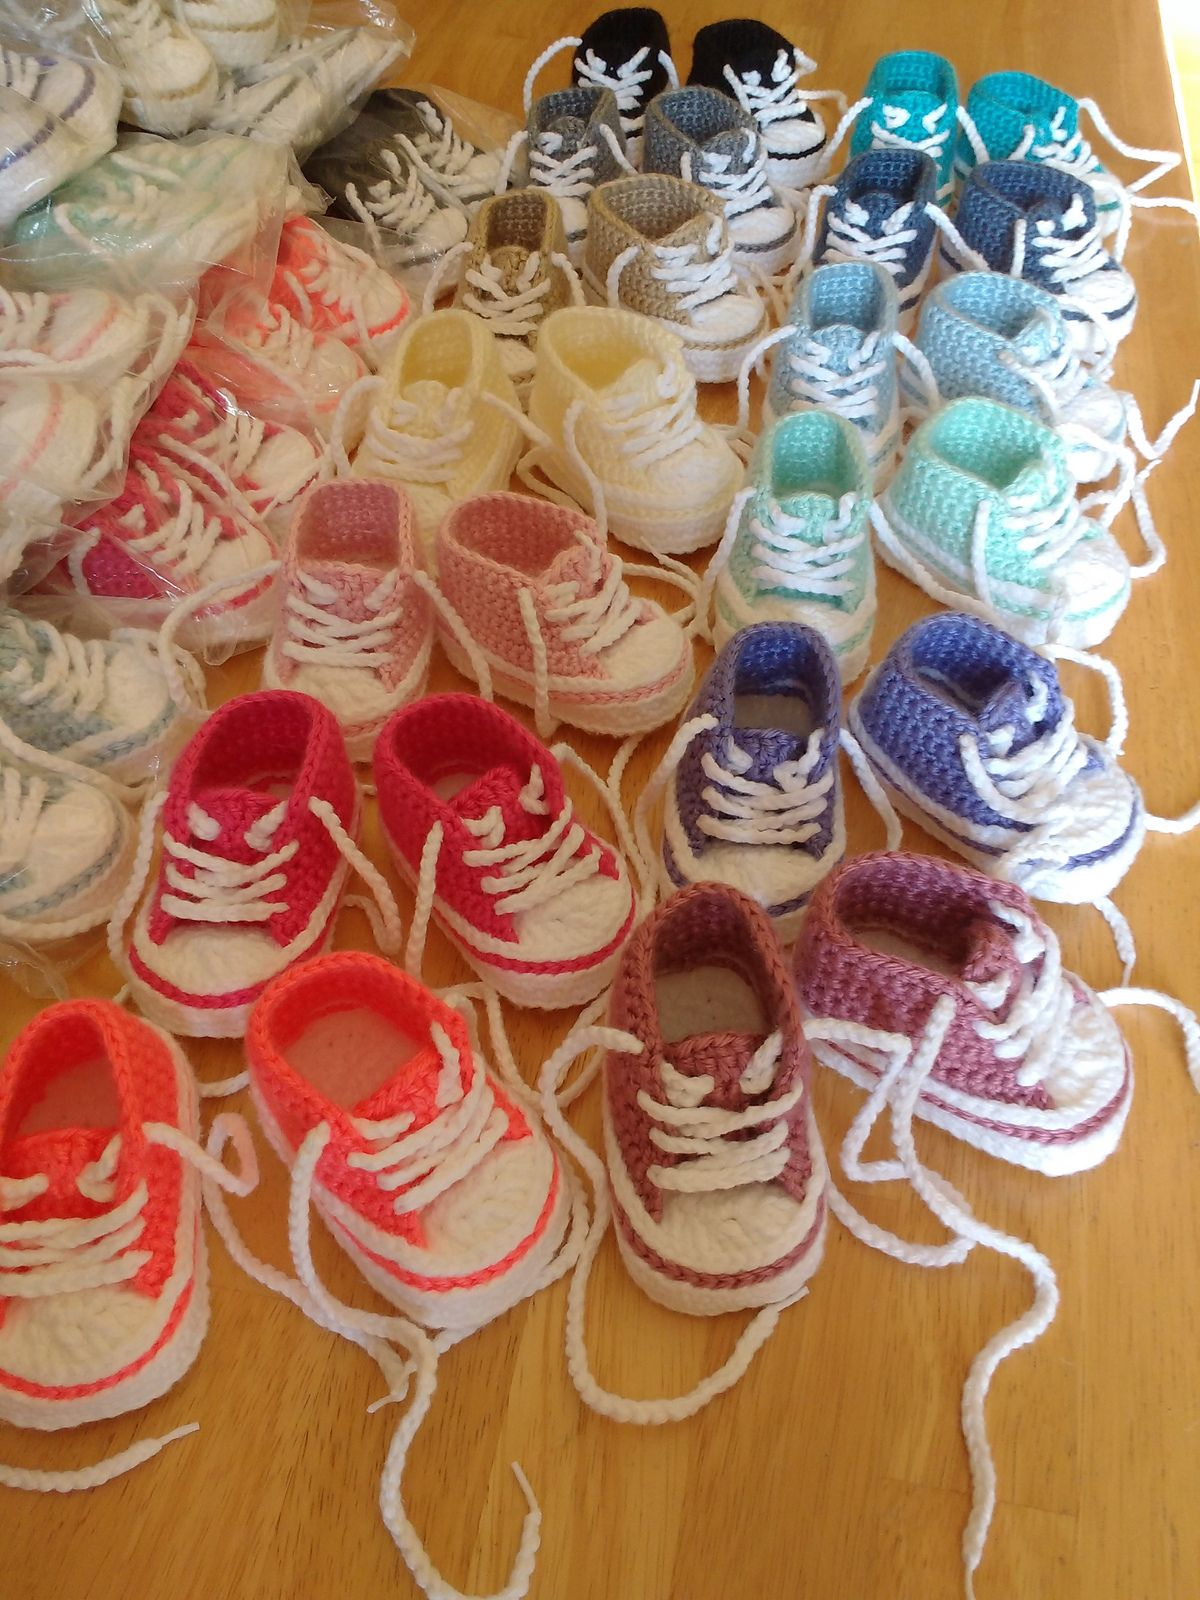 Crochet Baby Converse Booties By Suzanne Resaul - Free Crochet ...